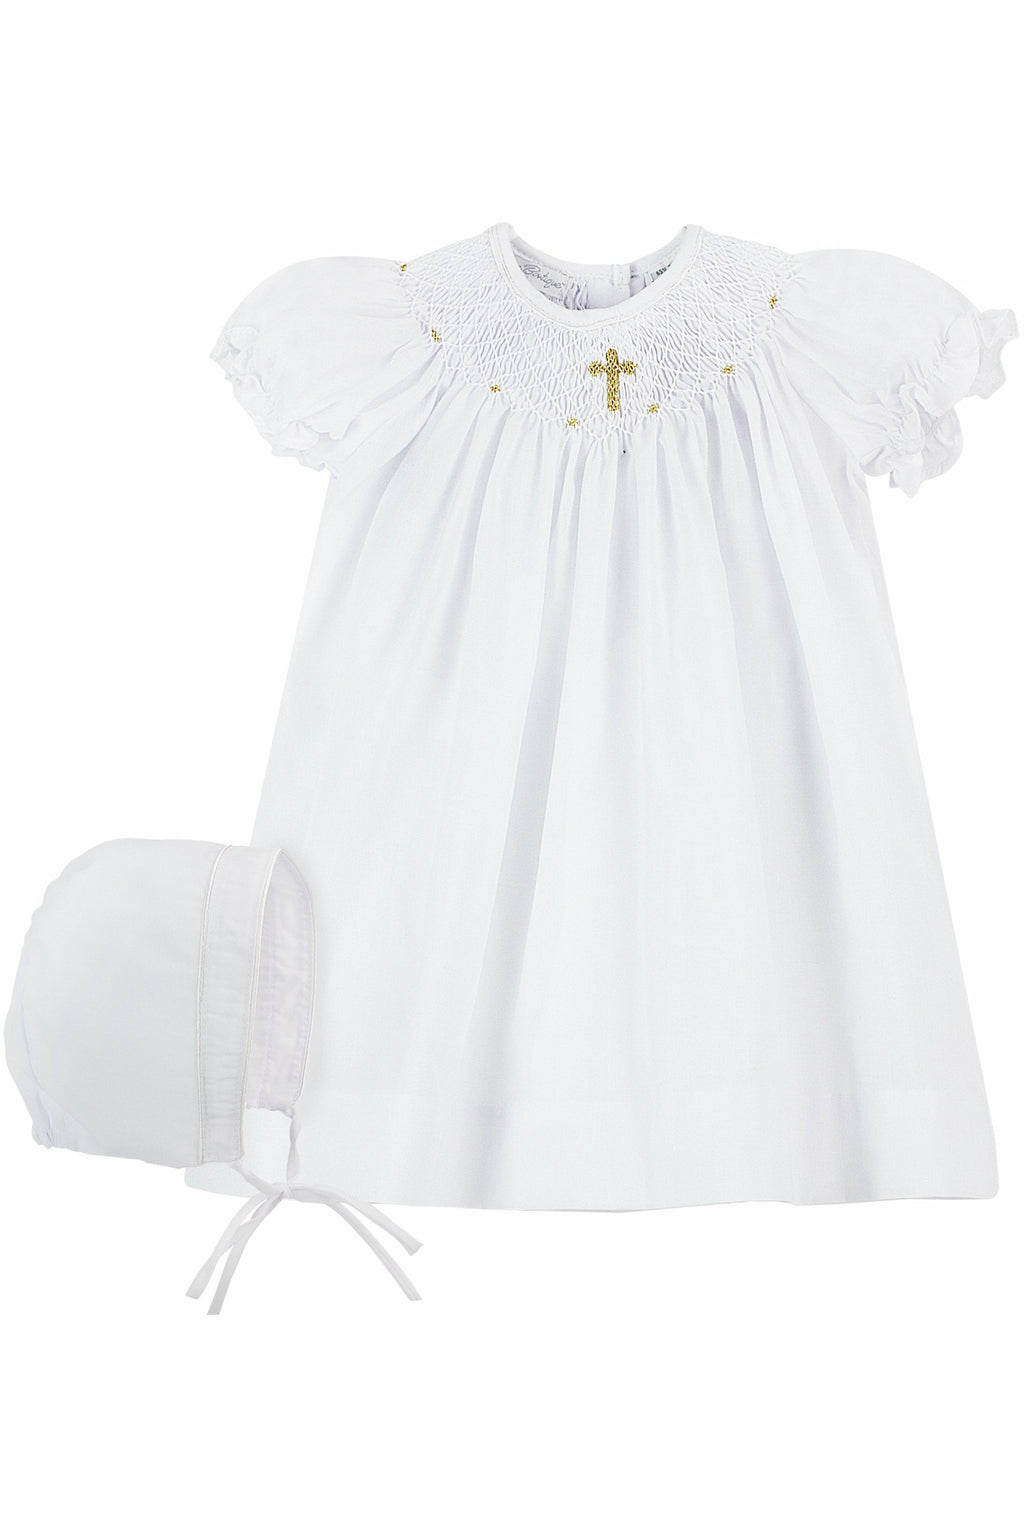 Baby Girls Hand Smocked Christening Baptism Dress - Gold Cross + Bonnet